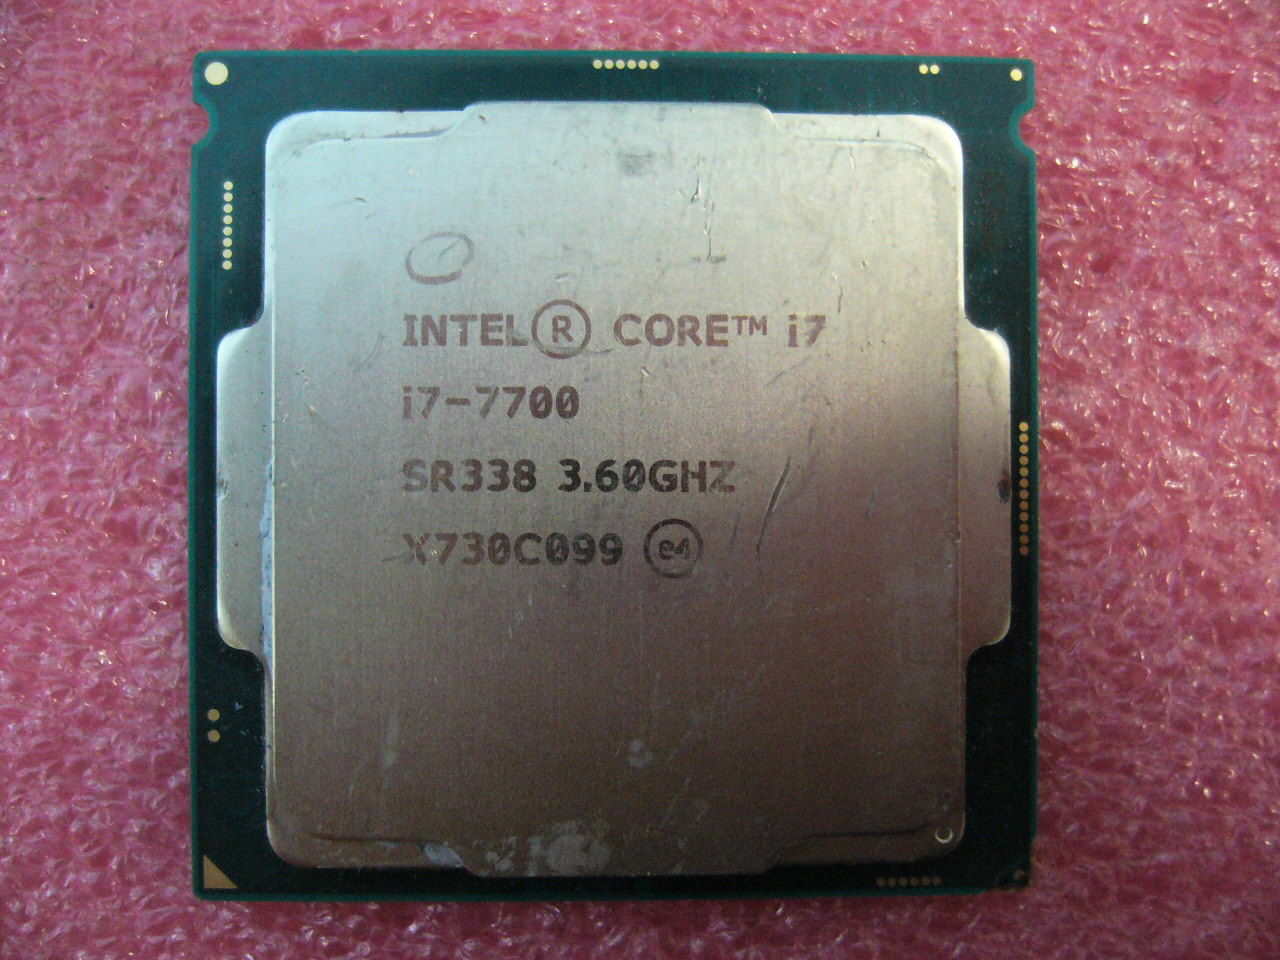 QTY 1x Intel CPU i7-7700 Quad-Cores 3.6Ghz 8MB LGA1151 SR338 bent corner